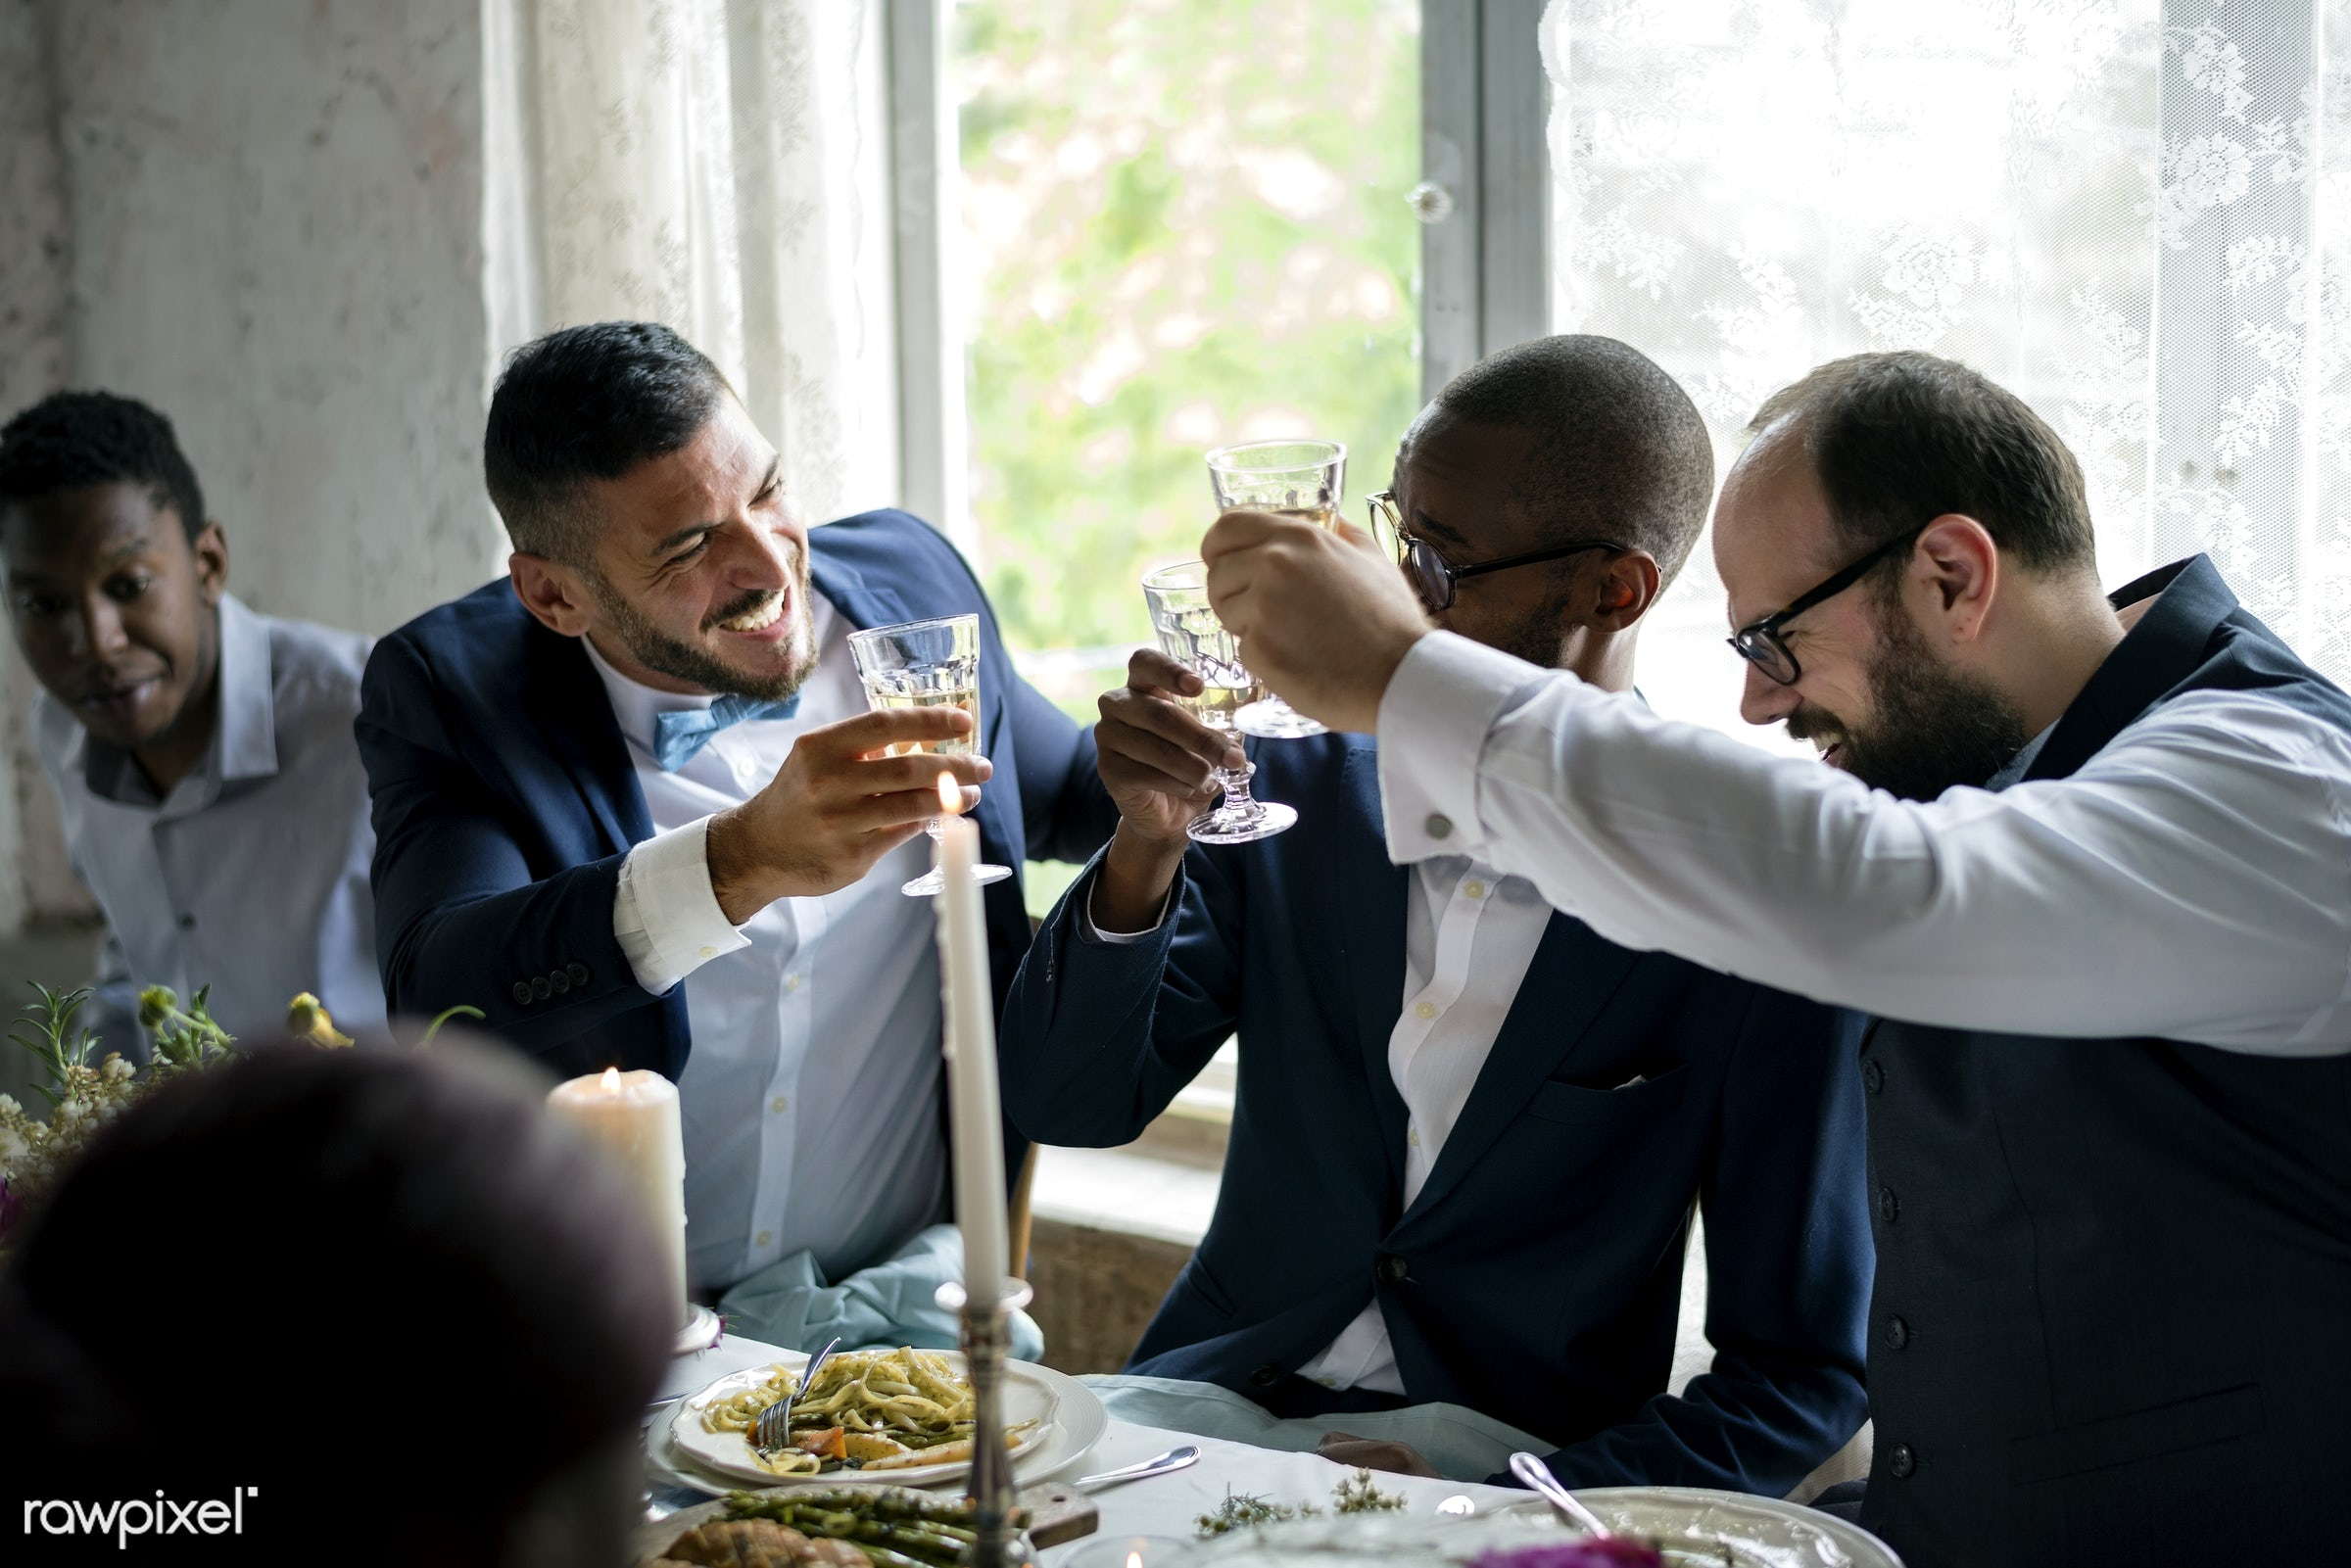 People holding their champagne glasses for a toast at a wedding table - party, gay, alcohol, celebration, champagne,...